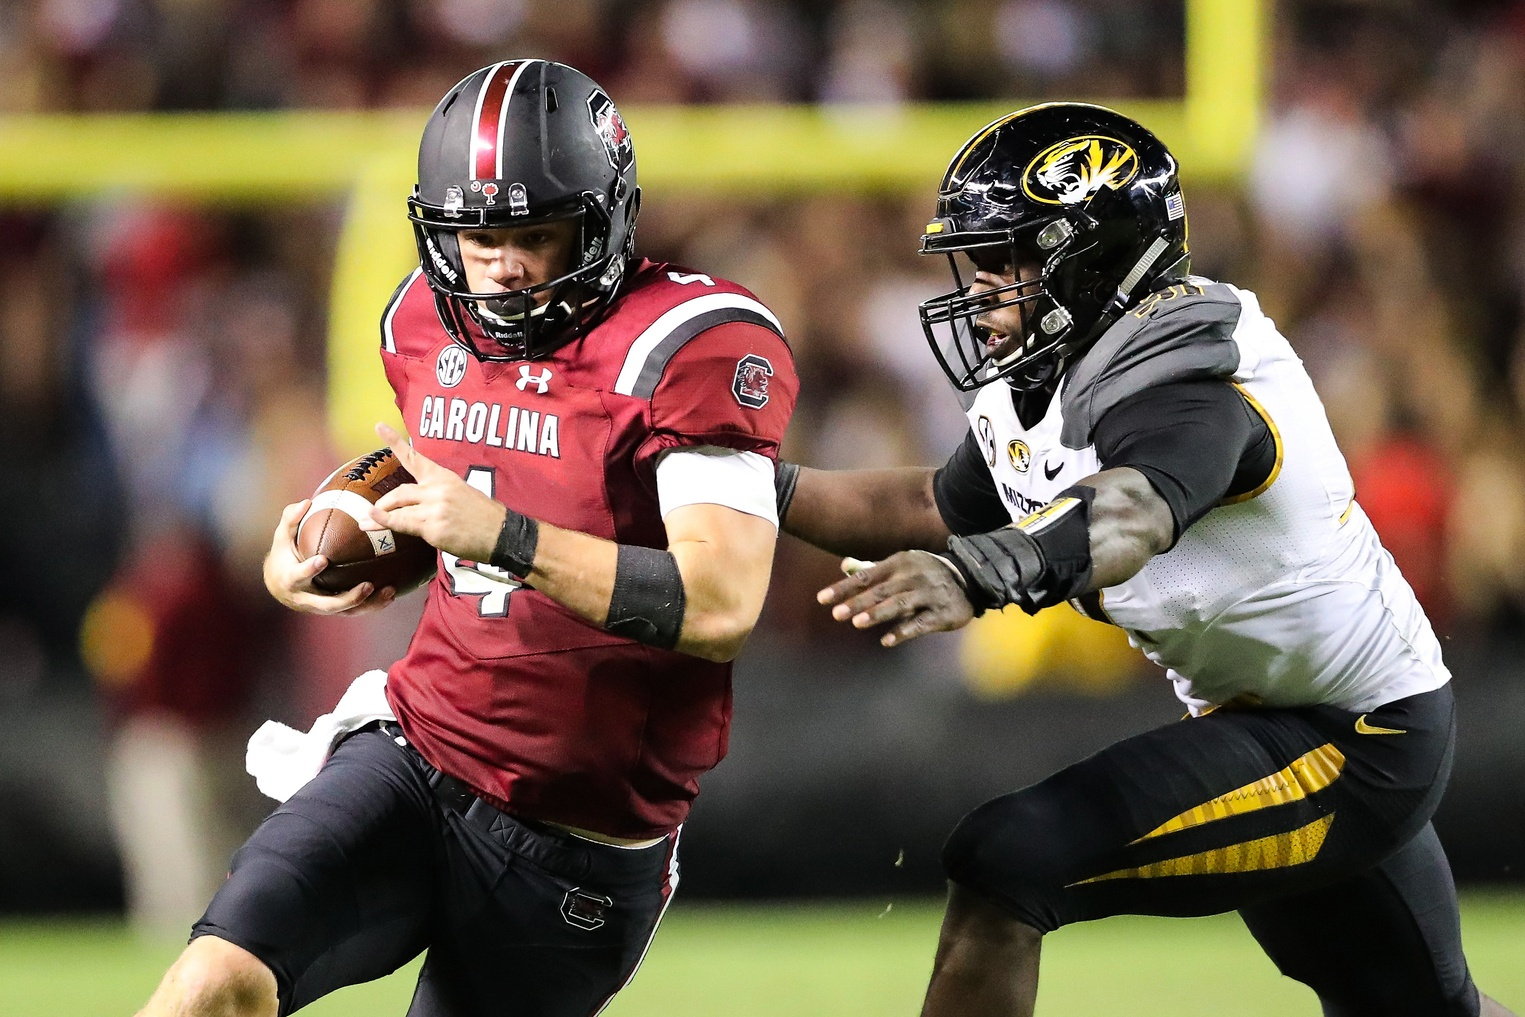 Nov 5, 2016; Columbia, SC, USA; South Carolina Gamecocks quarterback Jake Bentley (4) tries to outrun Missouri Tigers defensive end Charles Harris (91) during the second half at Williams-Brice Stadium. South Carolina wins 31-21 over Missouri. Mandatory Credit: Jim Dedmon-USA TODAY Sports